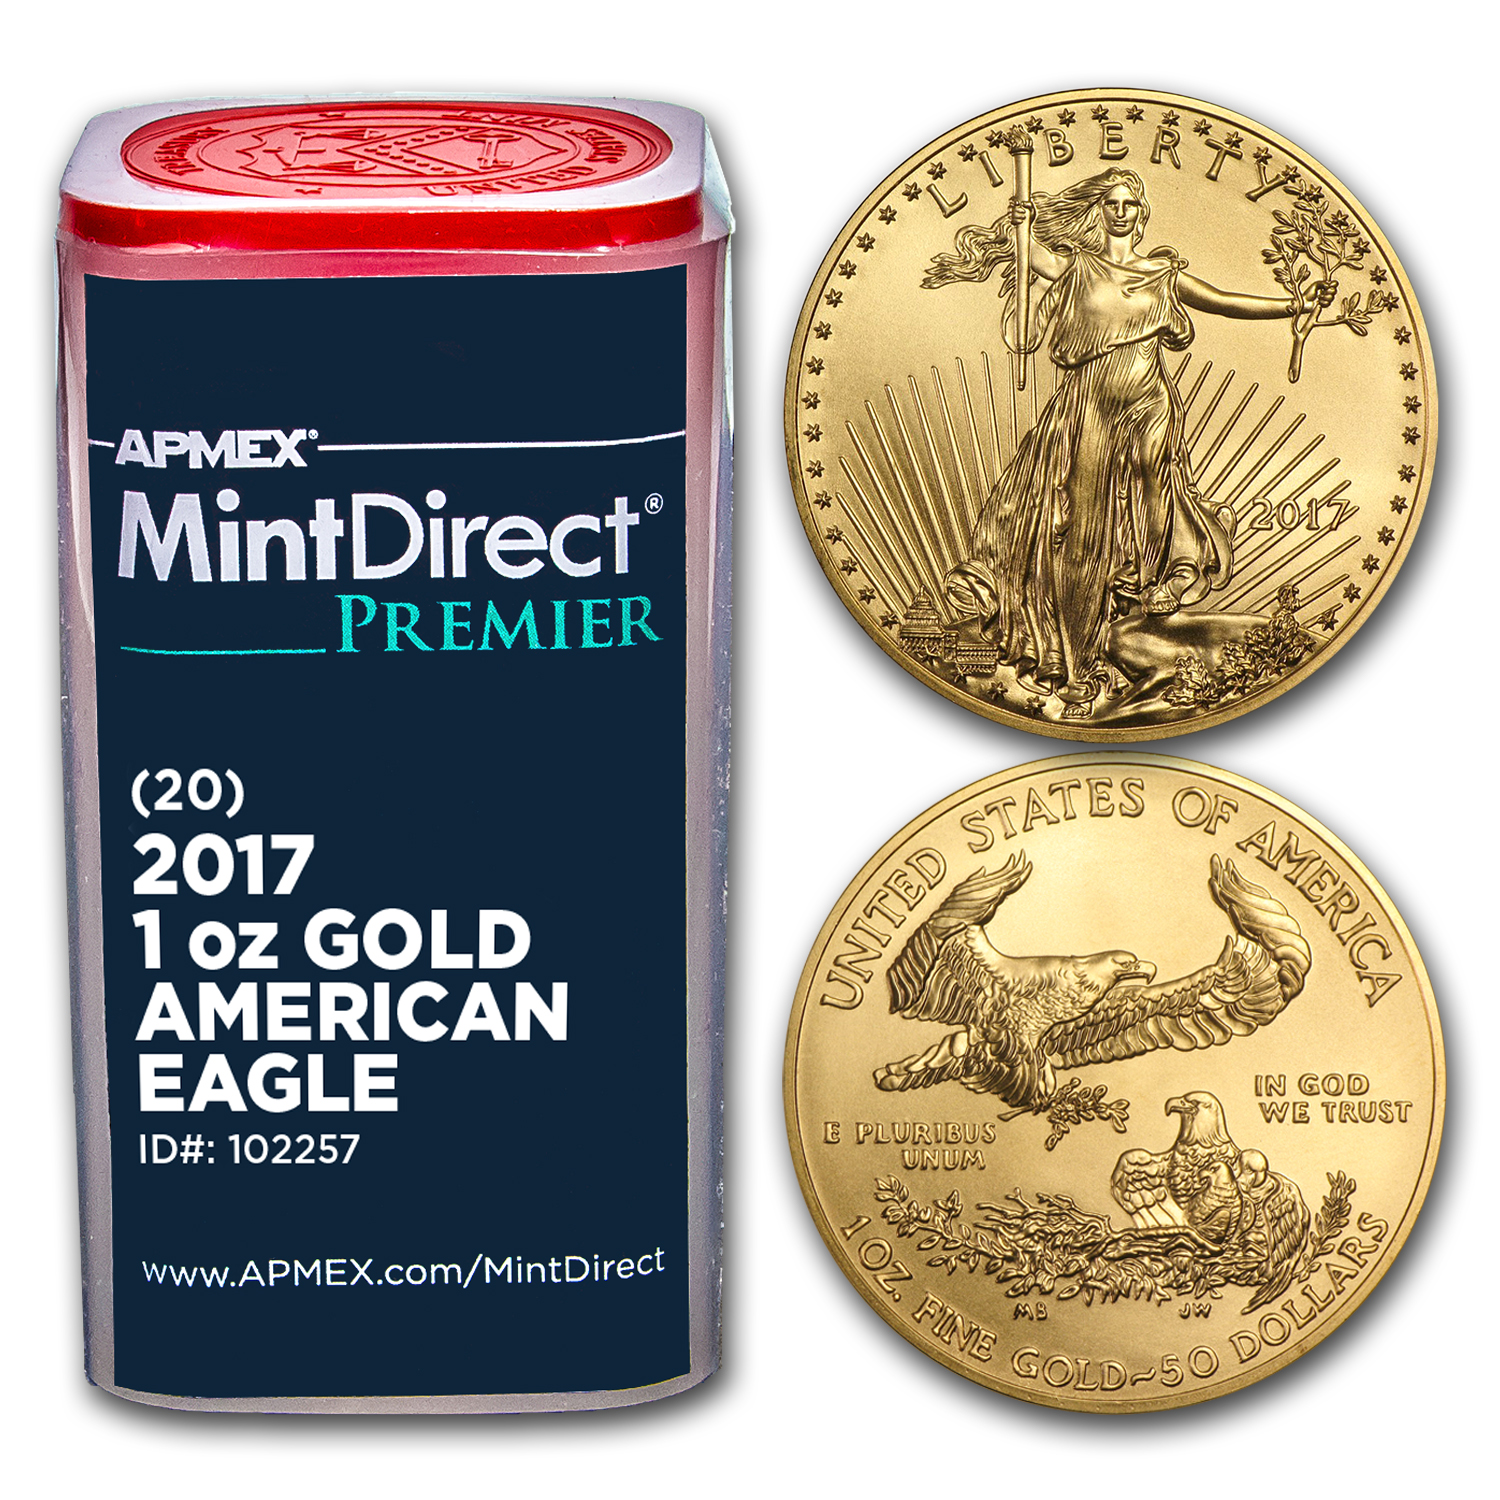 2017 1 oz Gold American Eagle (20-Coin MintDirect® Premier Tube)